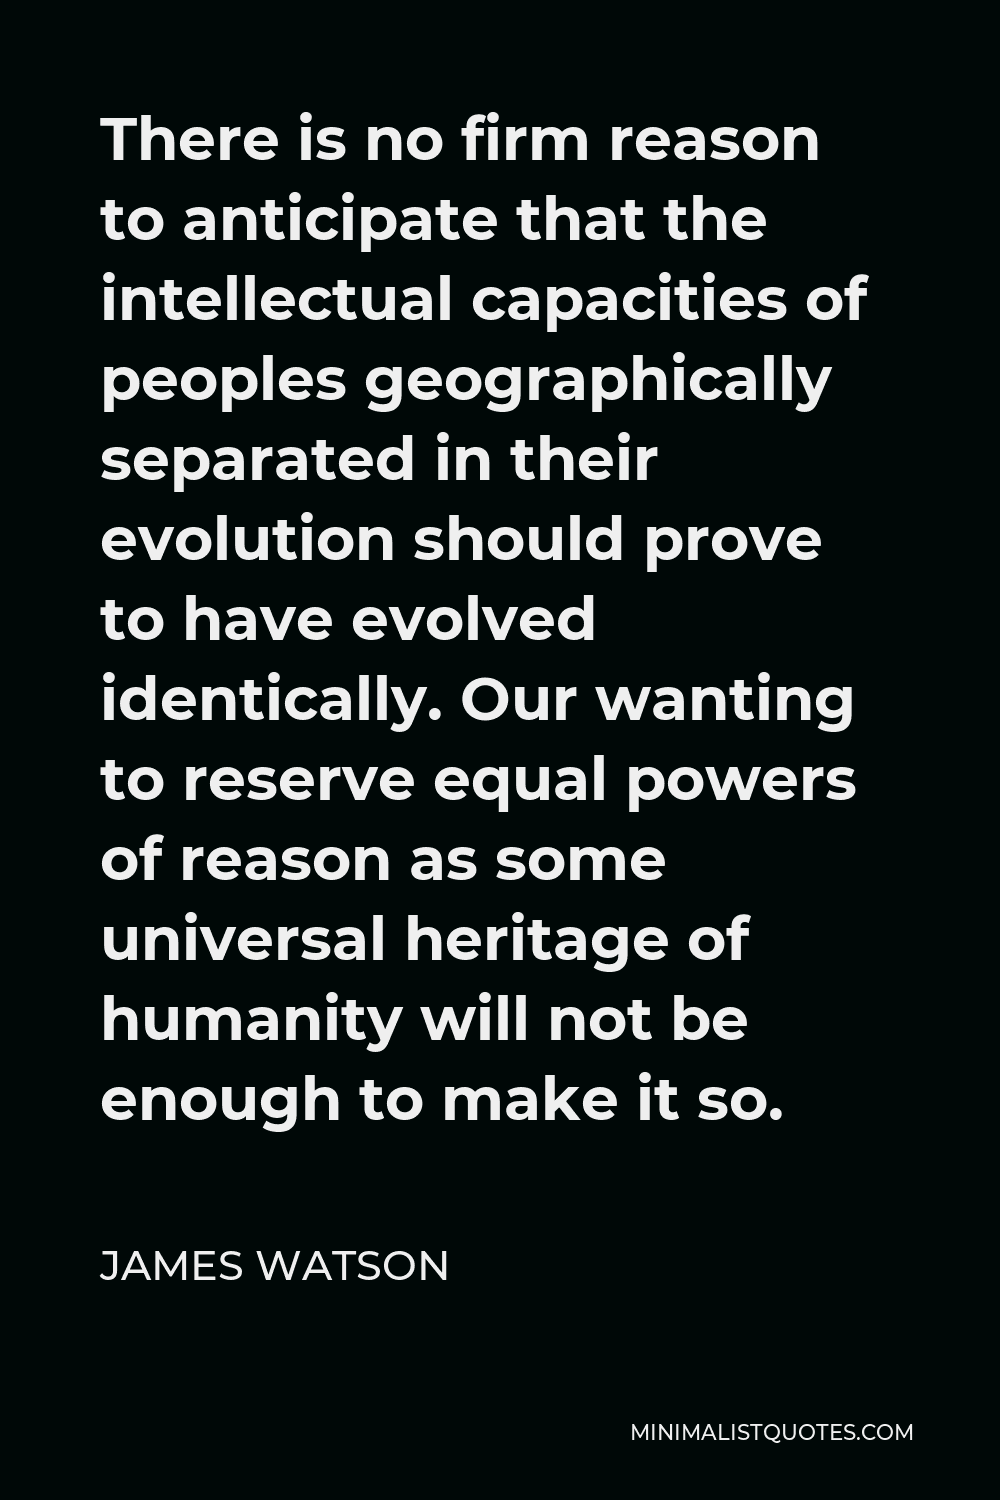 James Watson Quote - There is no firm reason to anticipate that the intellectual capacities of peoples geographically separated in their evolution should prove to have evolved identically. Our wanting to reserve equal powers of reason as some universal heritage of humanity will not be enough to make it so.